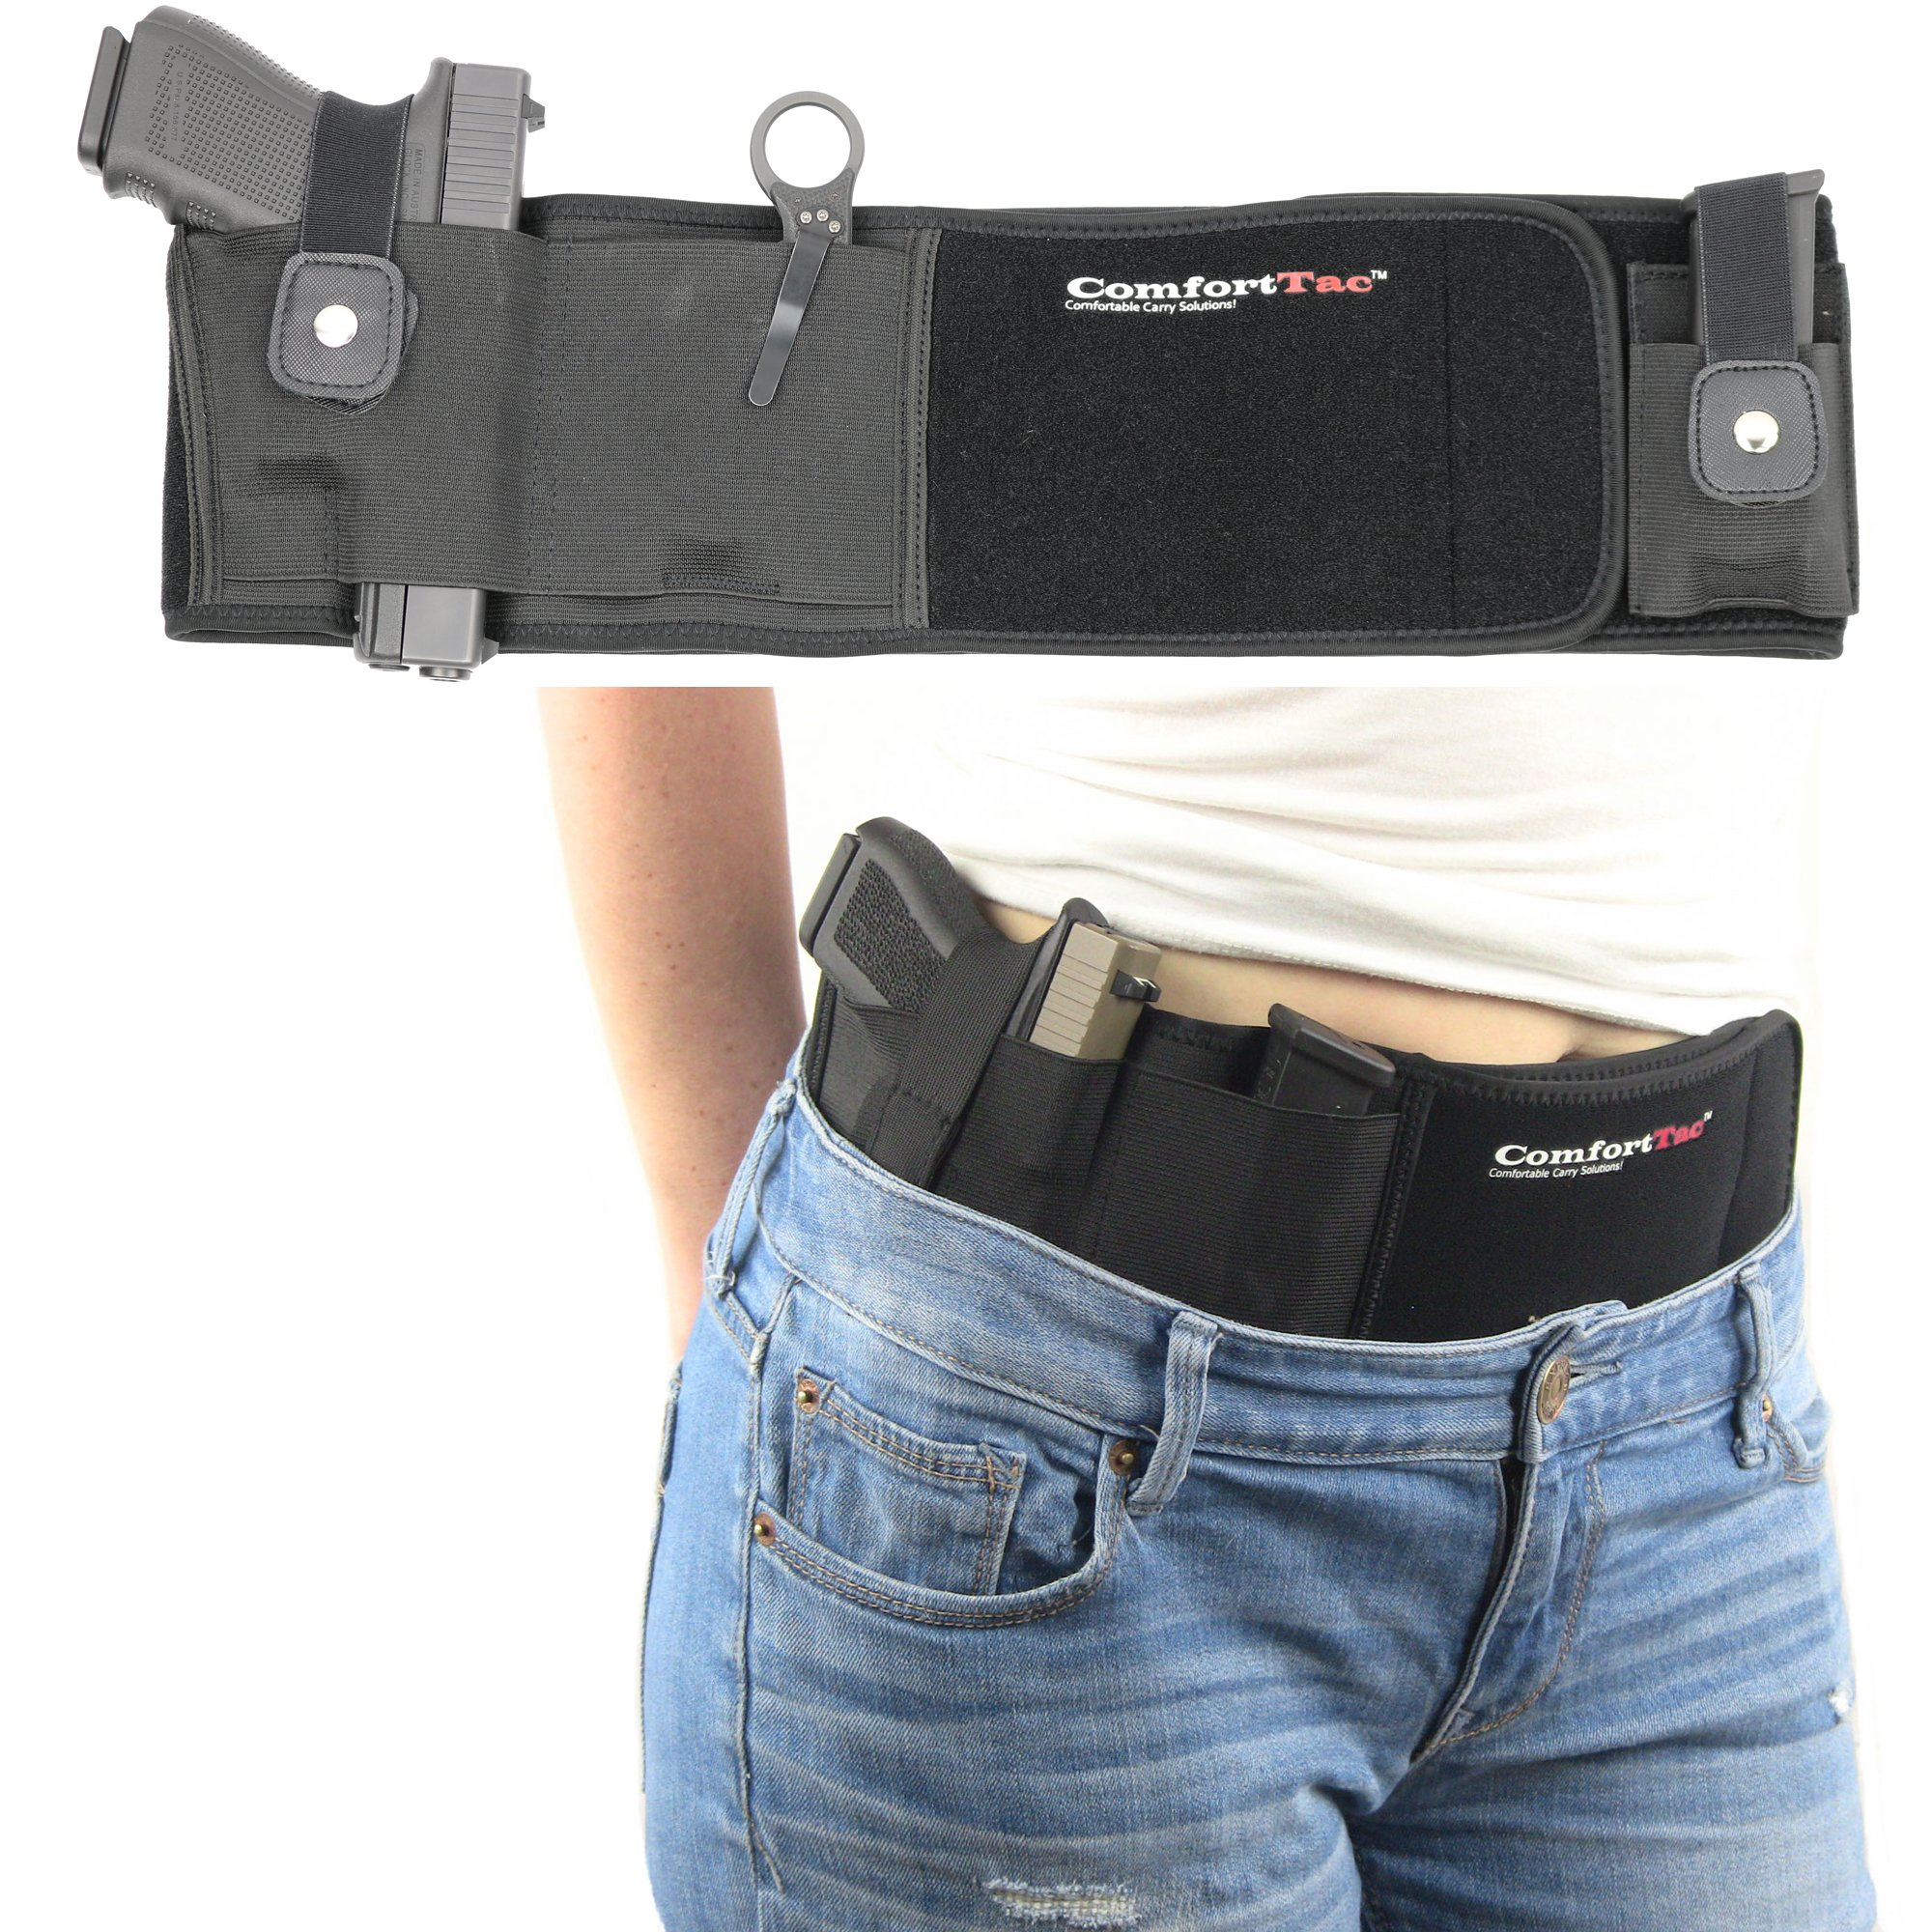 Ultimate Belly Band Holster for Concealed Carry | Black | Fits Gun Smith and Wesson Bodyguard, Shield, Glock 19, 42, 43, P238, Ruger LCP, and Similar Sized Guns | For Men and Women | Right Hand Draw by ComfortTac